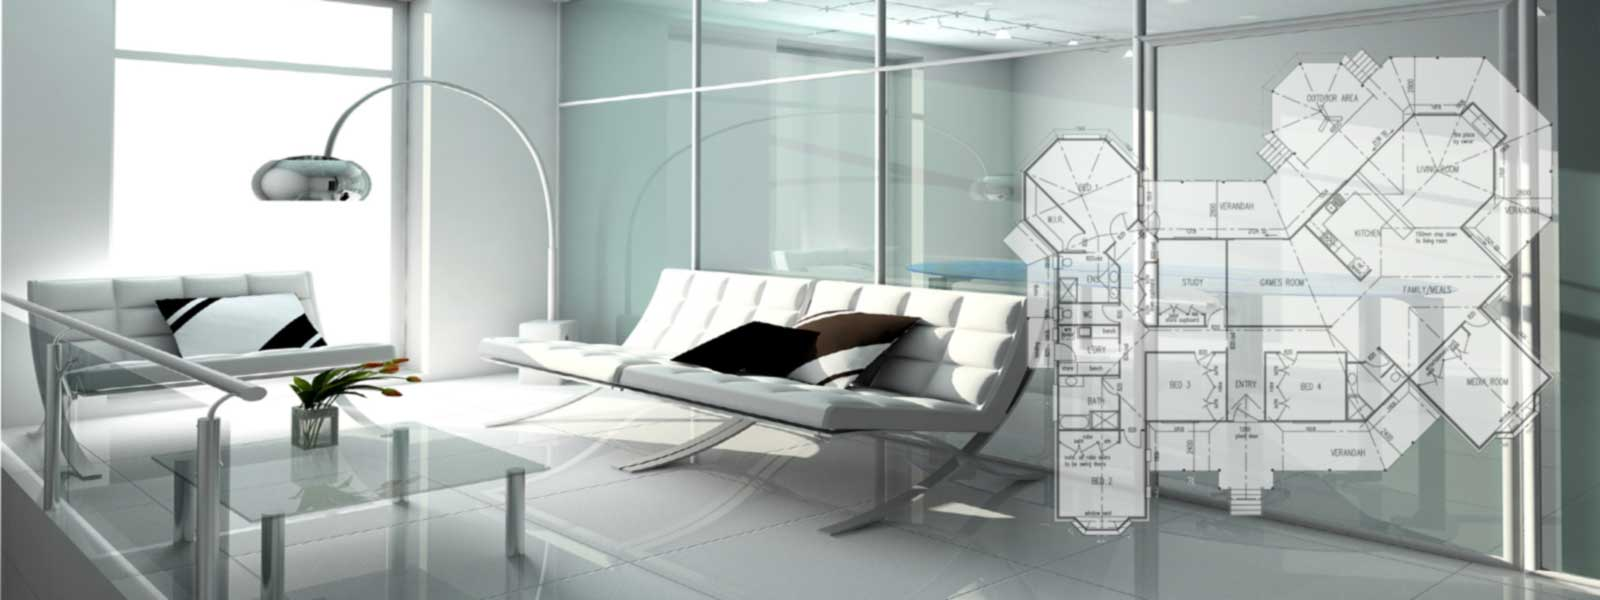 background office building with floorplan